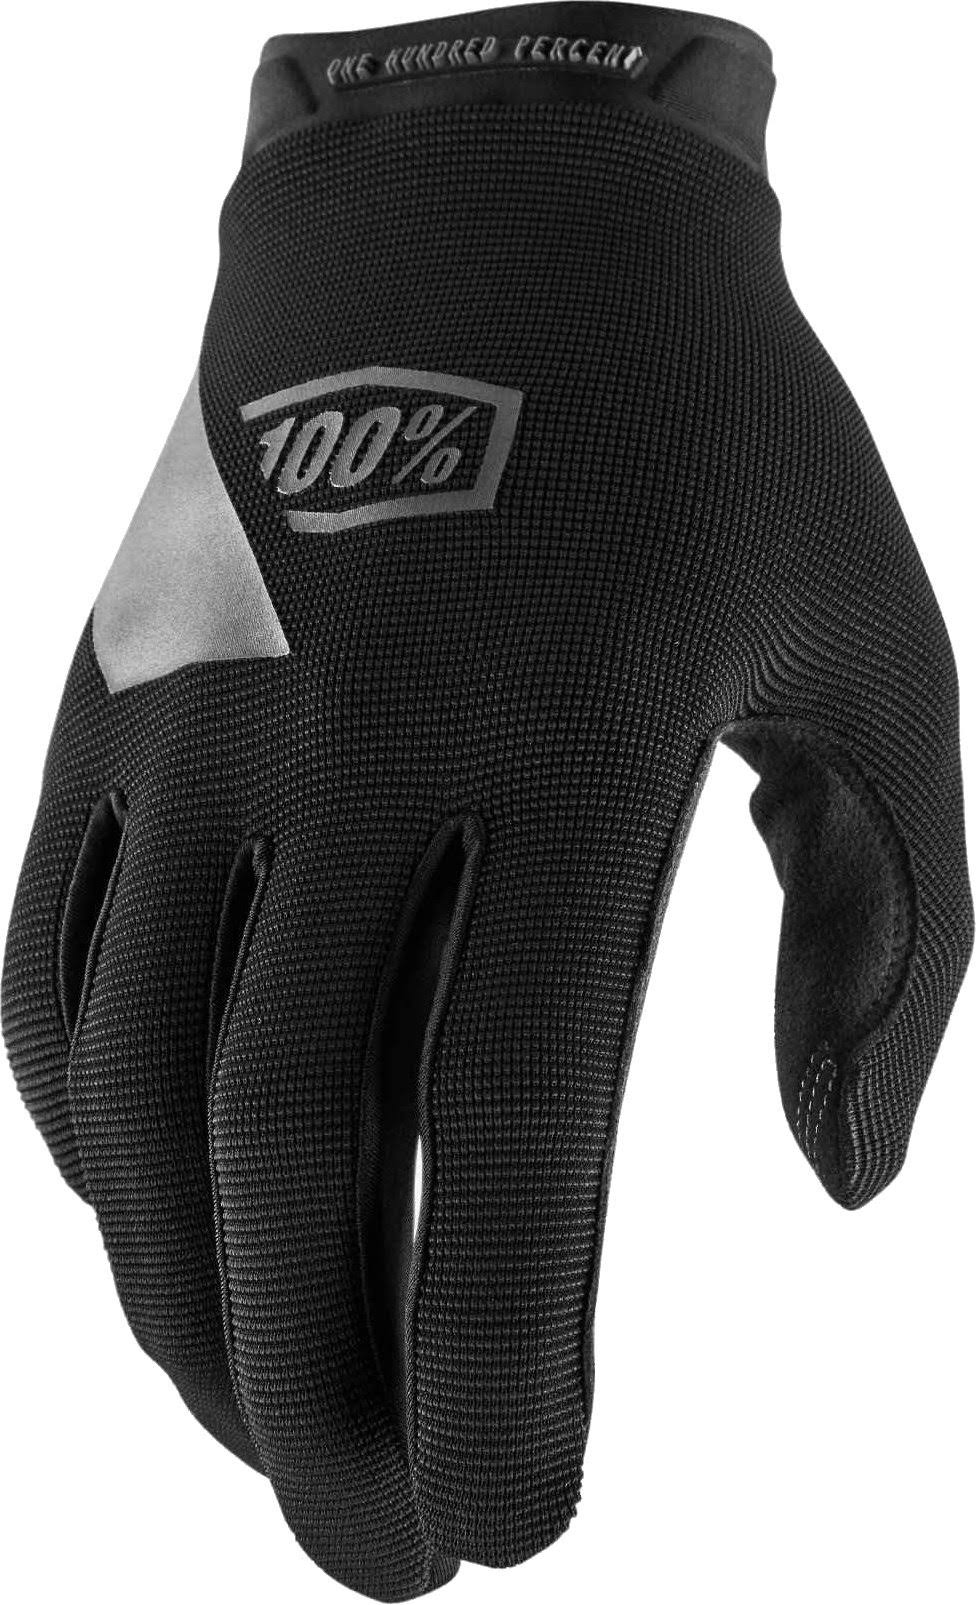 100% Ridecamp Men's Cycling Full Finger Glove - Black, X-Large